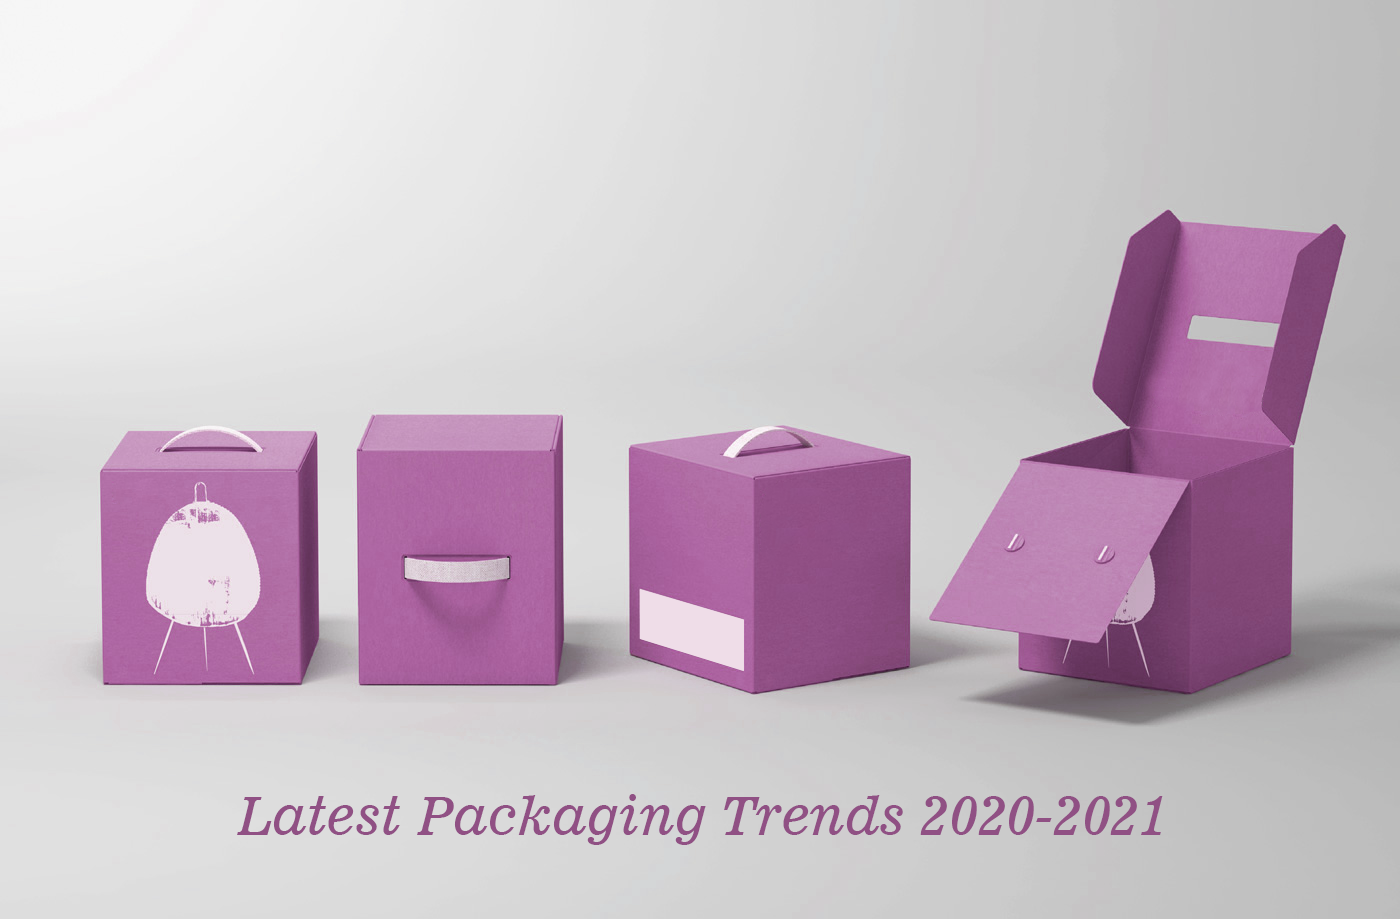 Latest Packaging Trends 2020-2021